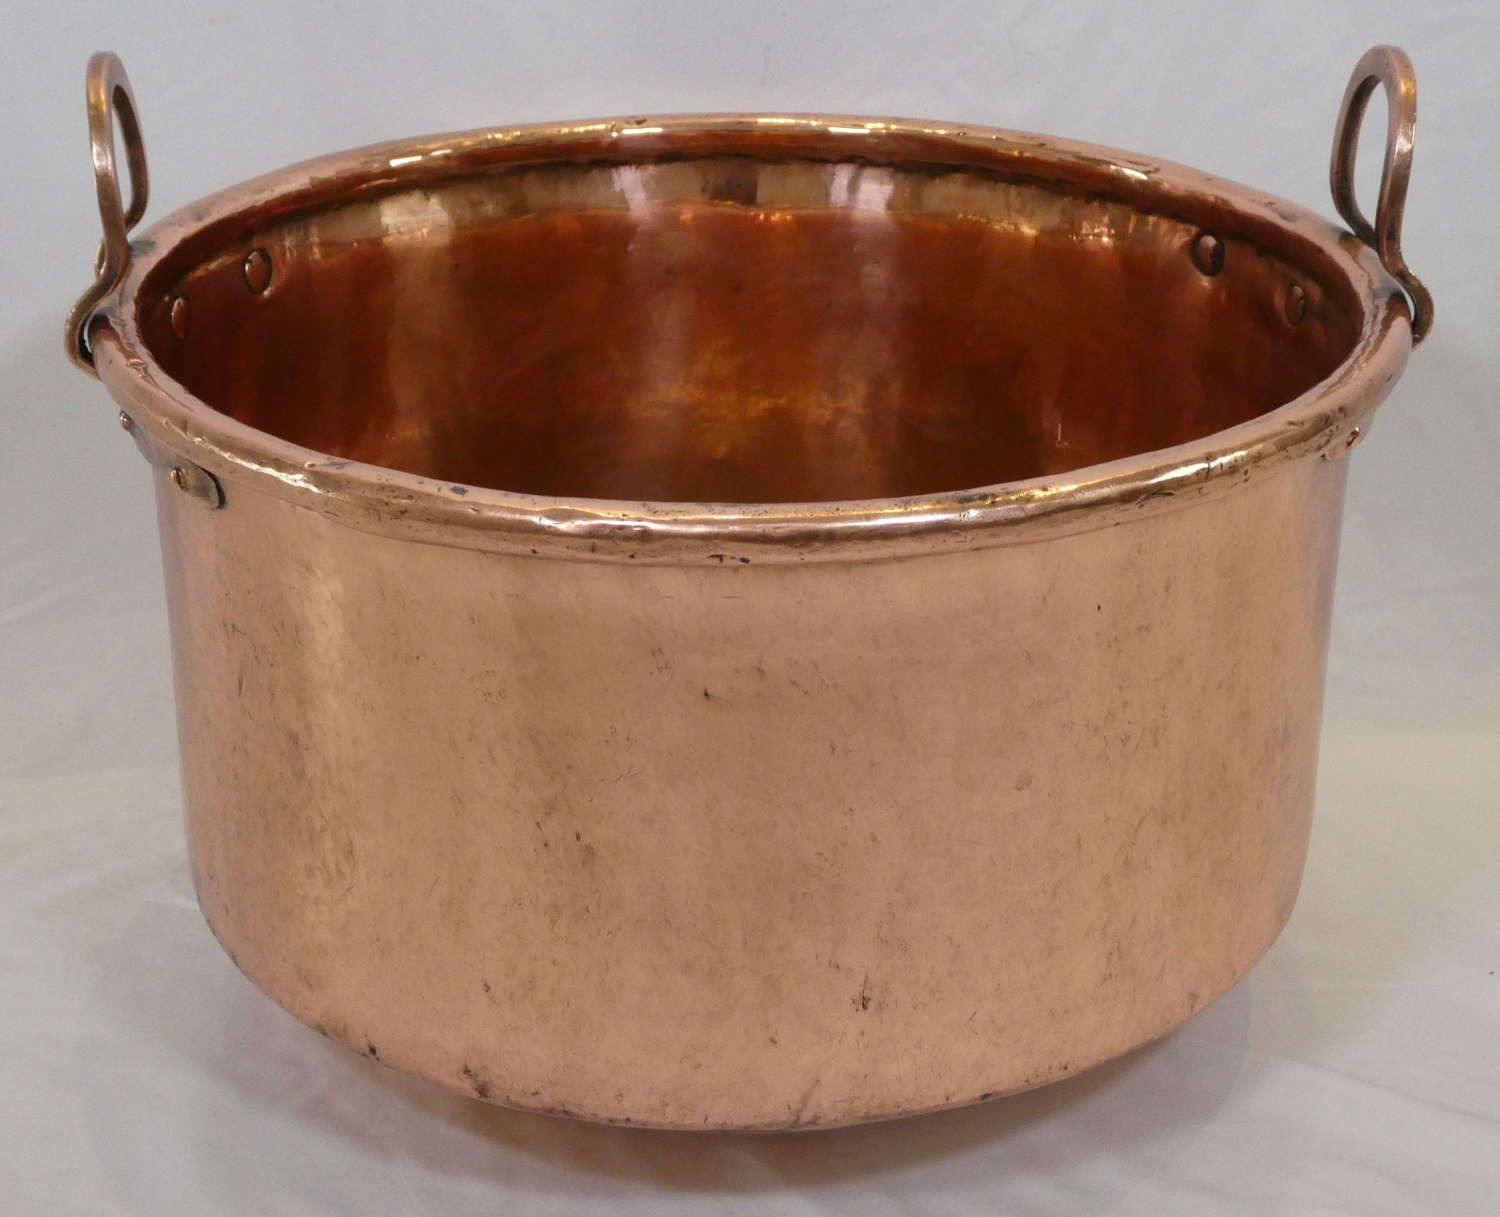 Large Copper Pot, circa 1900